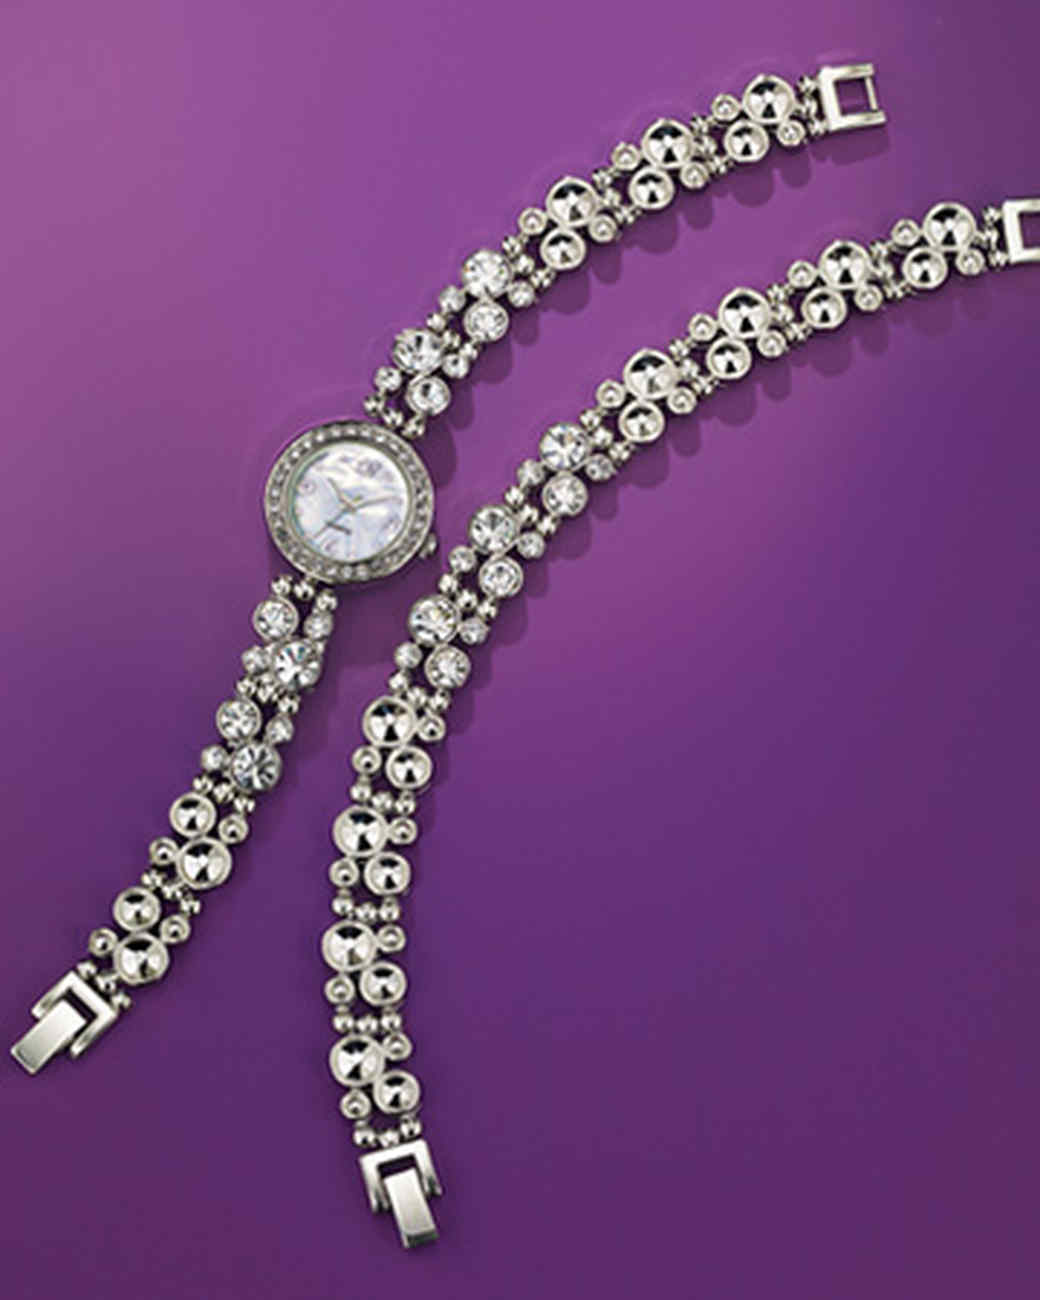 avon_watchbracelet_03.jpg